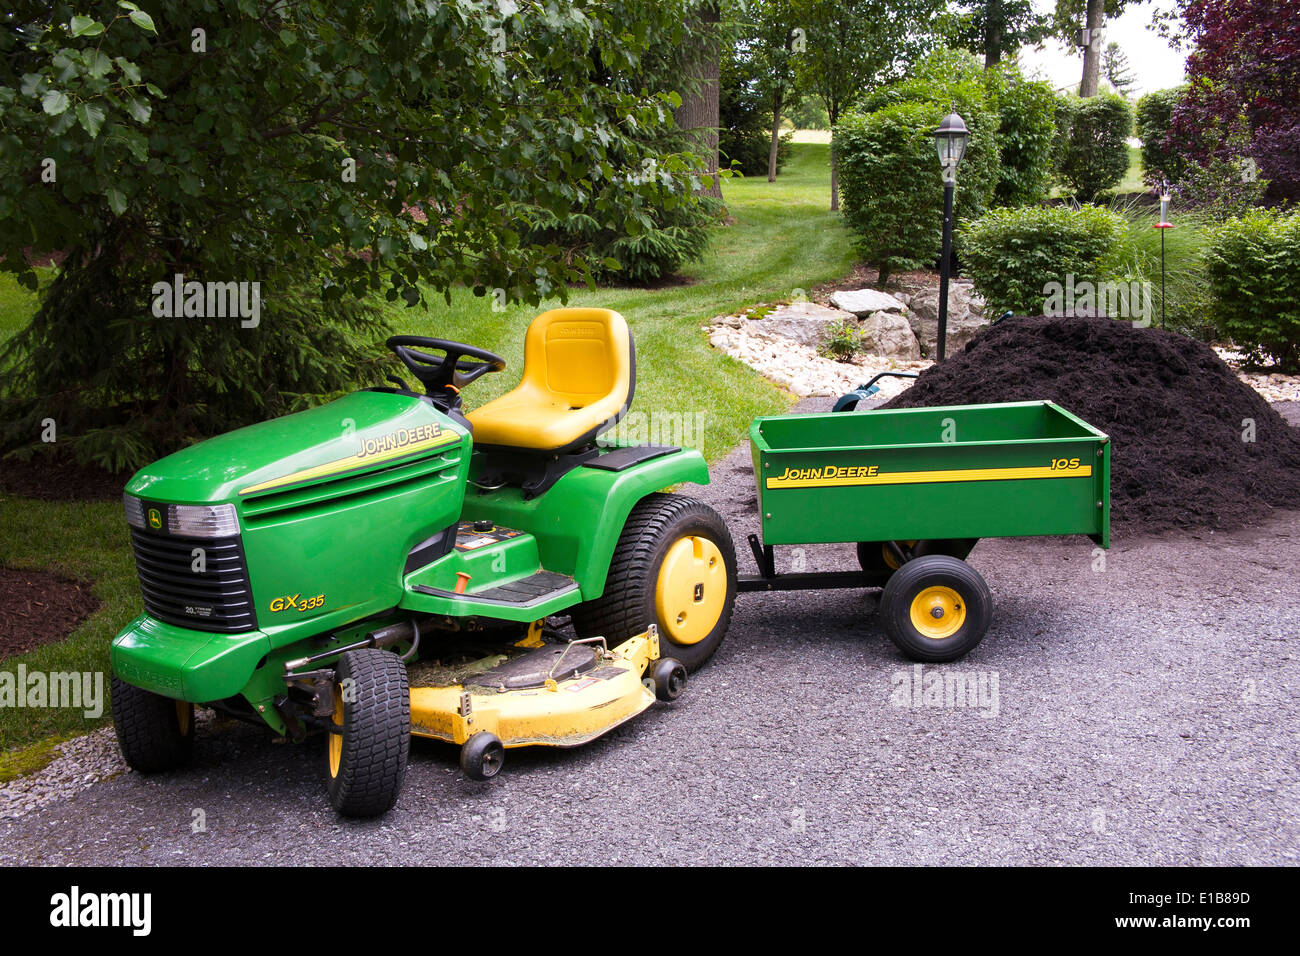 john deere traktor mit wagen vor haufen garten mulch in einem wohngebiet hinterhof stockfoto. Black Bedroom Furniture Sets. Home Design Ideas